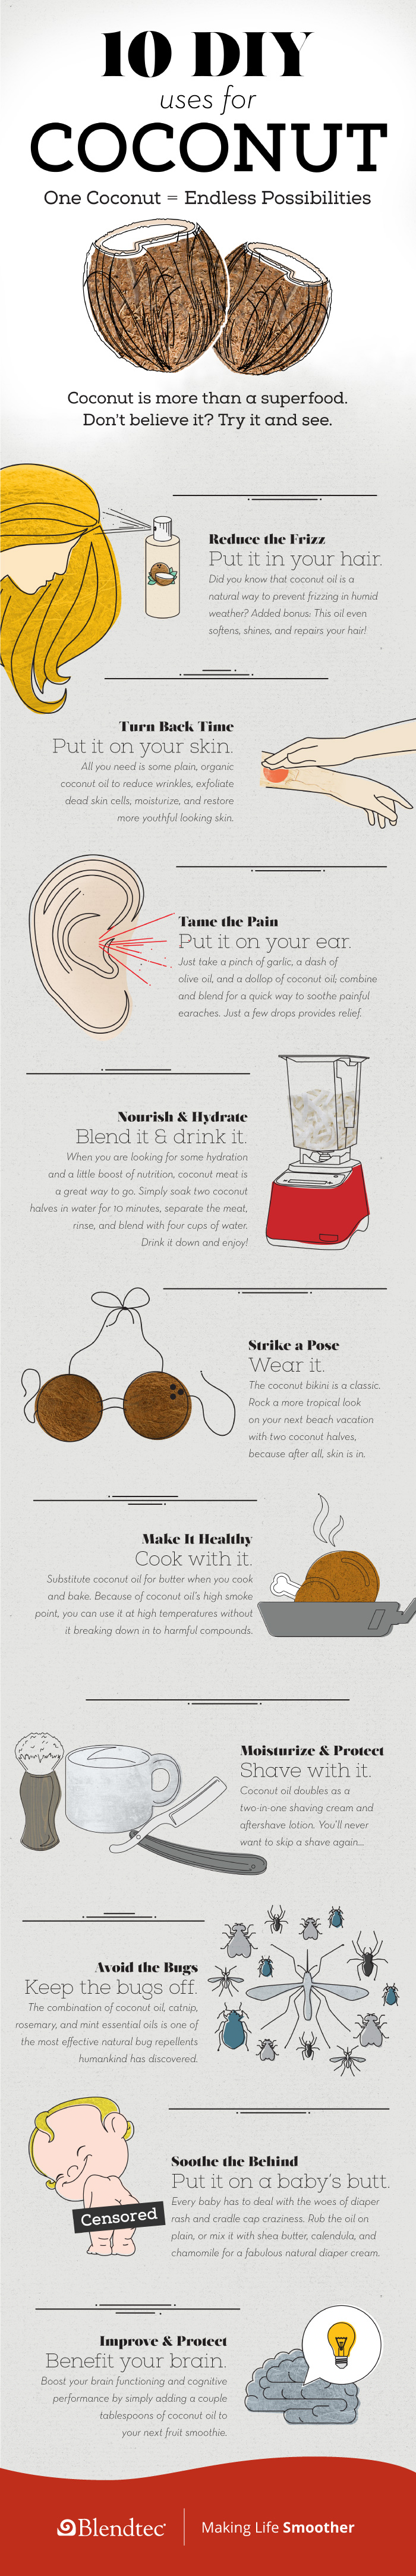 coconut_infographic